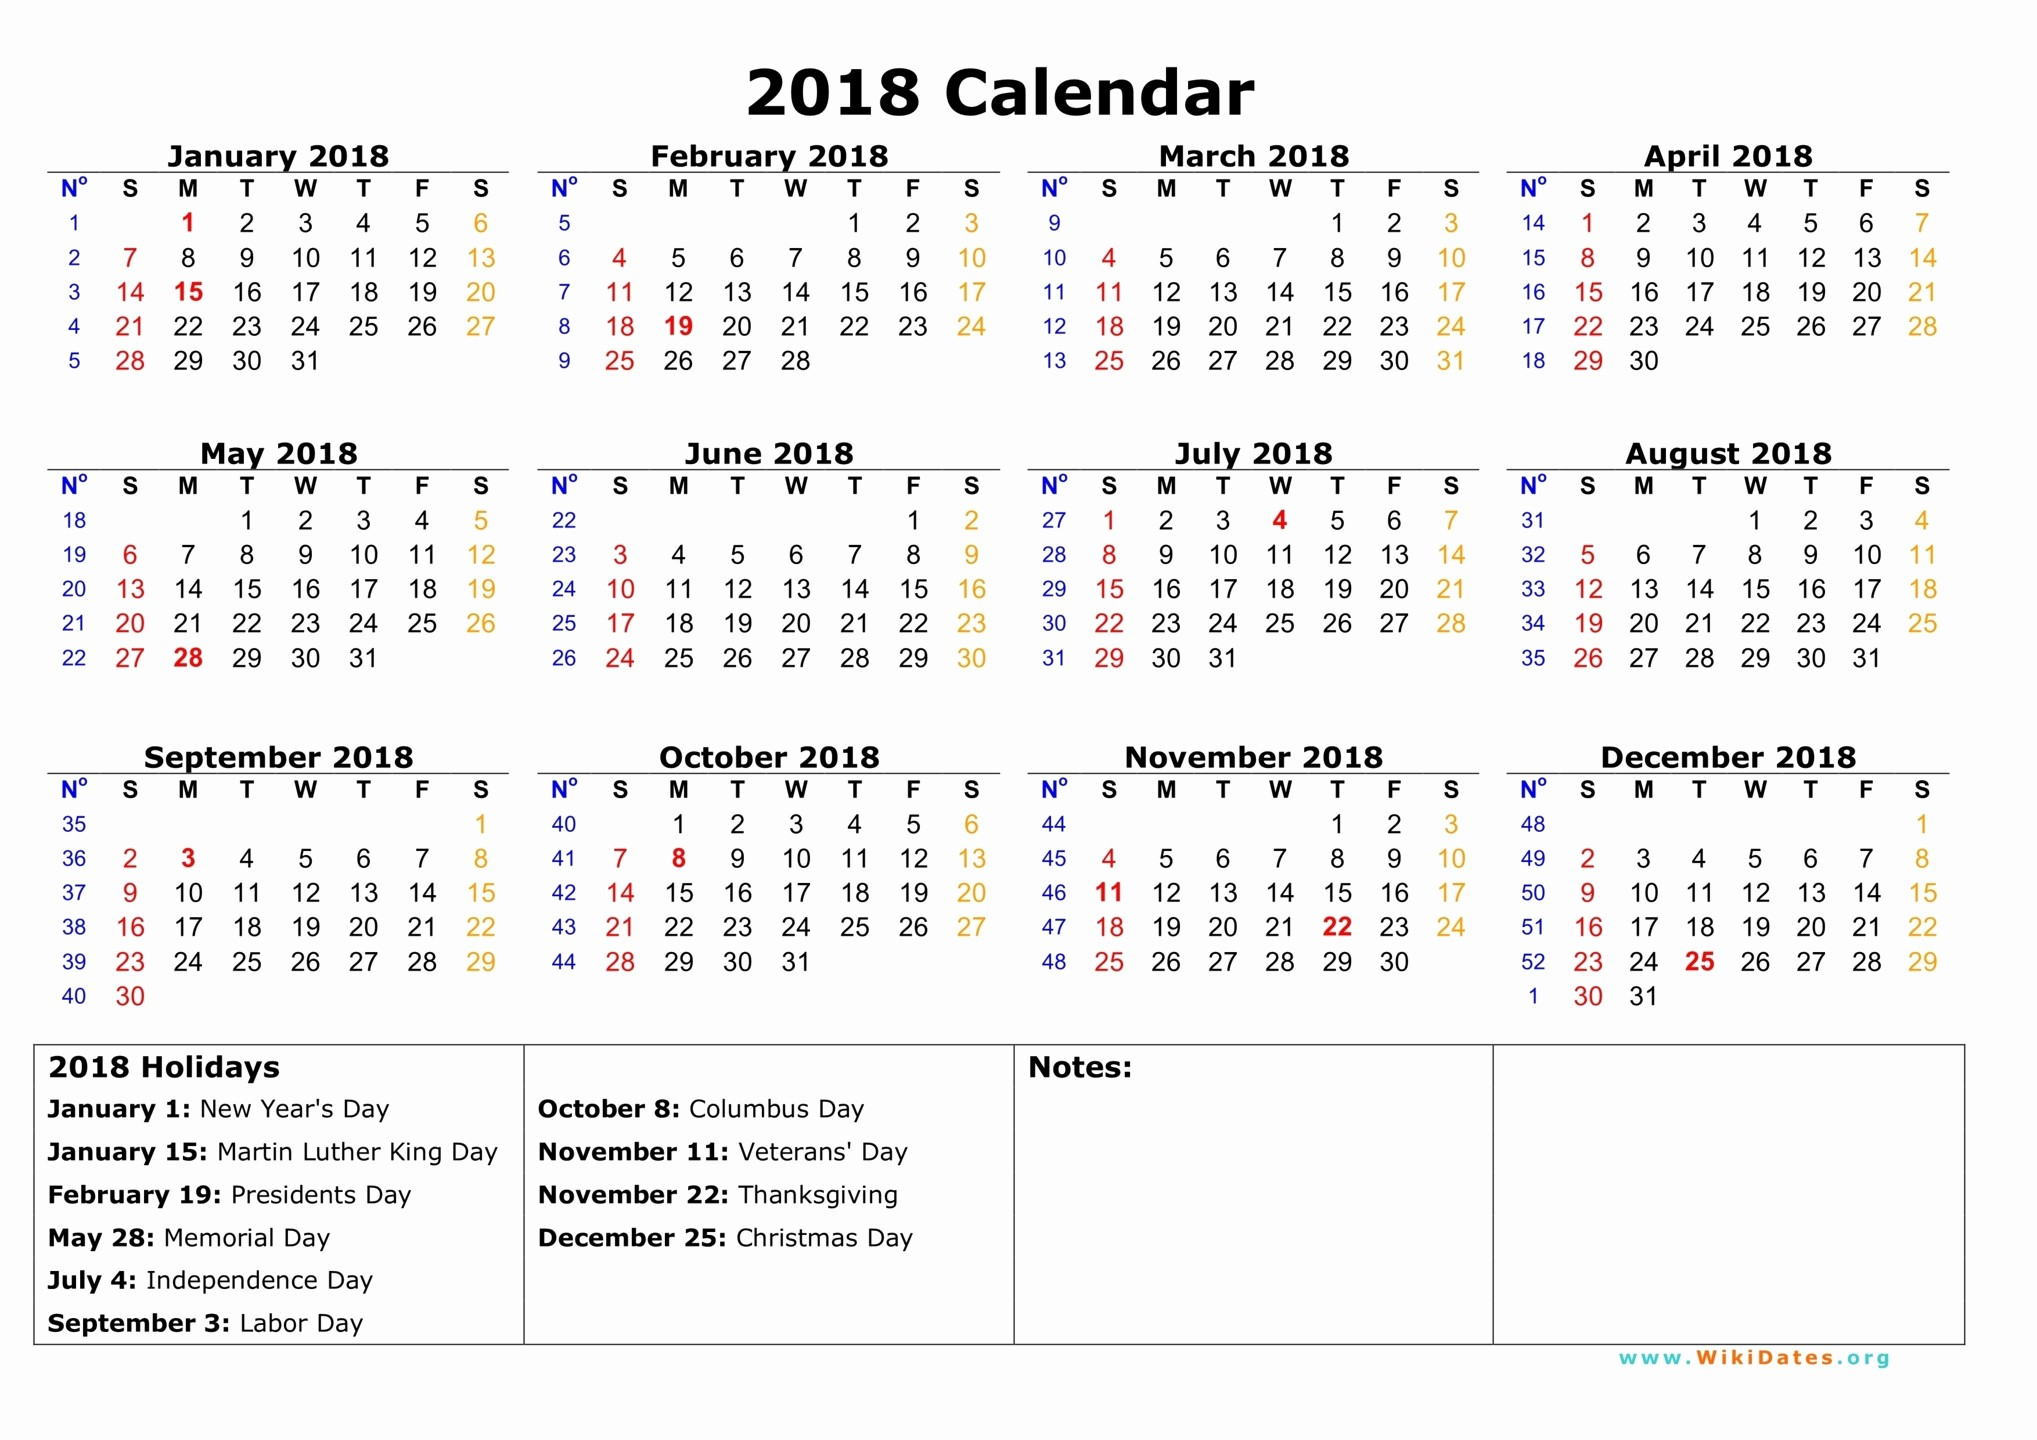 Kalender Tahun 2019 Pdf Más Recientes Awesome 42 Illustration islamic Calendar 2018 Uk Kalendar islam 2018 Of Kalender Tahun 2019 Pdf Recientes 59 Fotografie Von Fotokalender 2017 Zum Ausdrucken